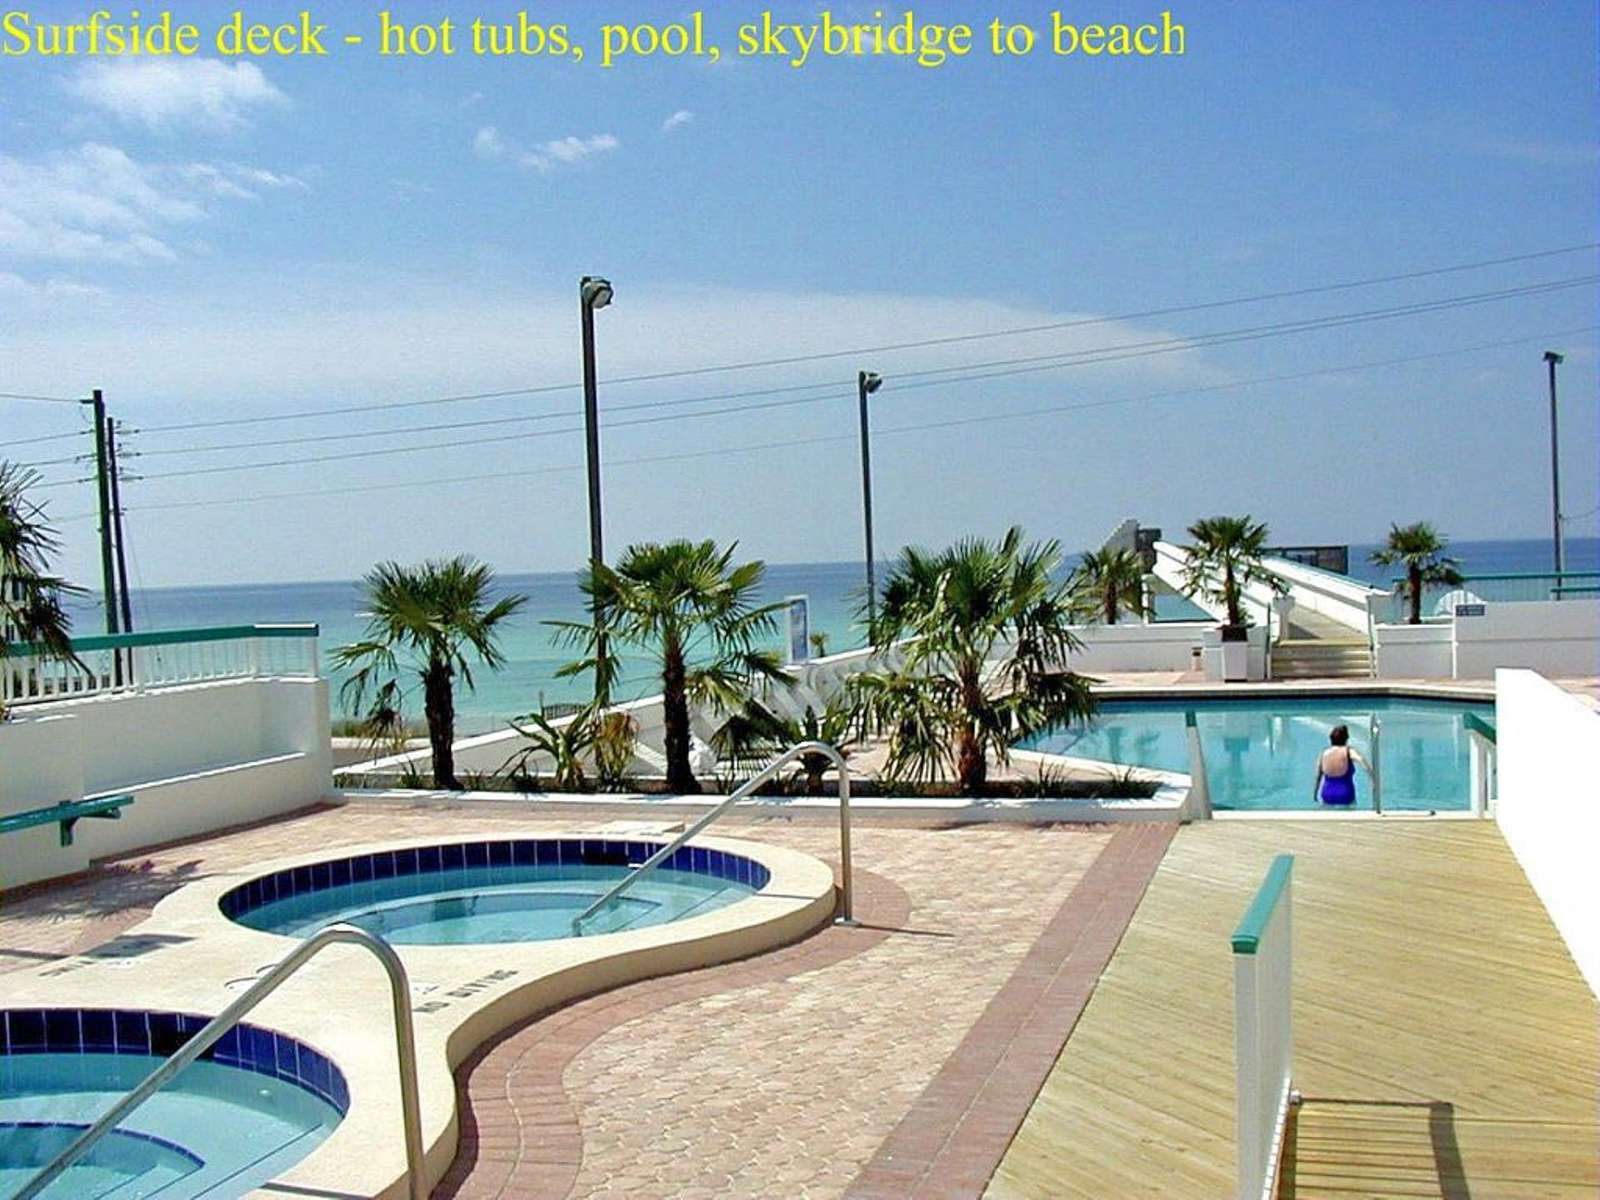 Tow Hot Tubs on Pool Deck